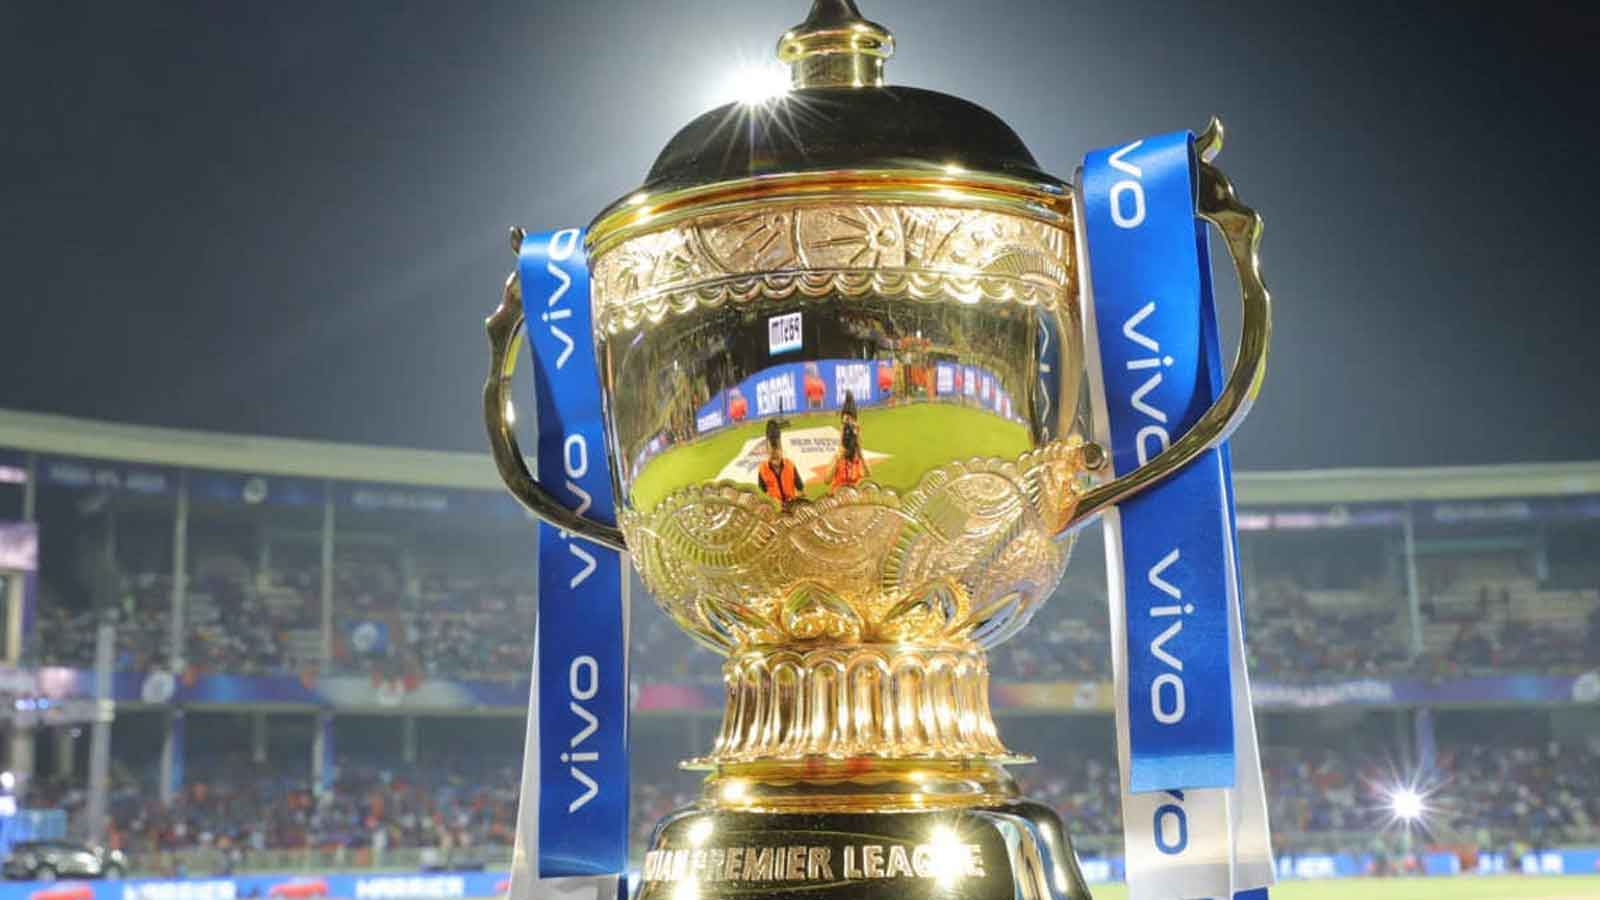 ipl-2020-bcci-did-right-thing-by-cancelling-partnership-with-vivo-says-rajeev-shukla